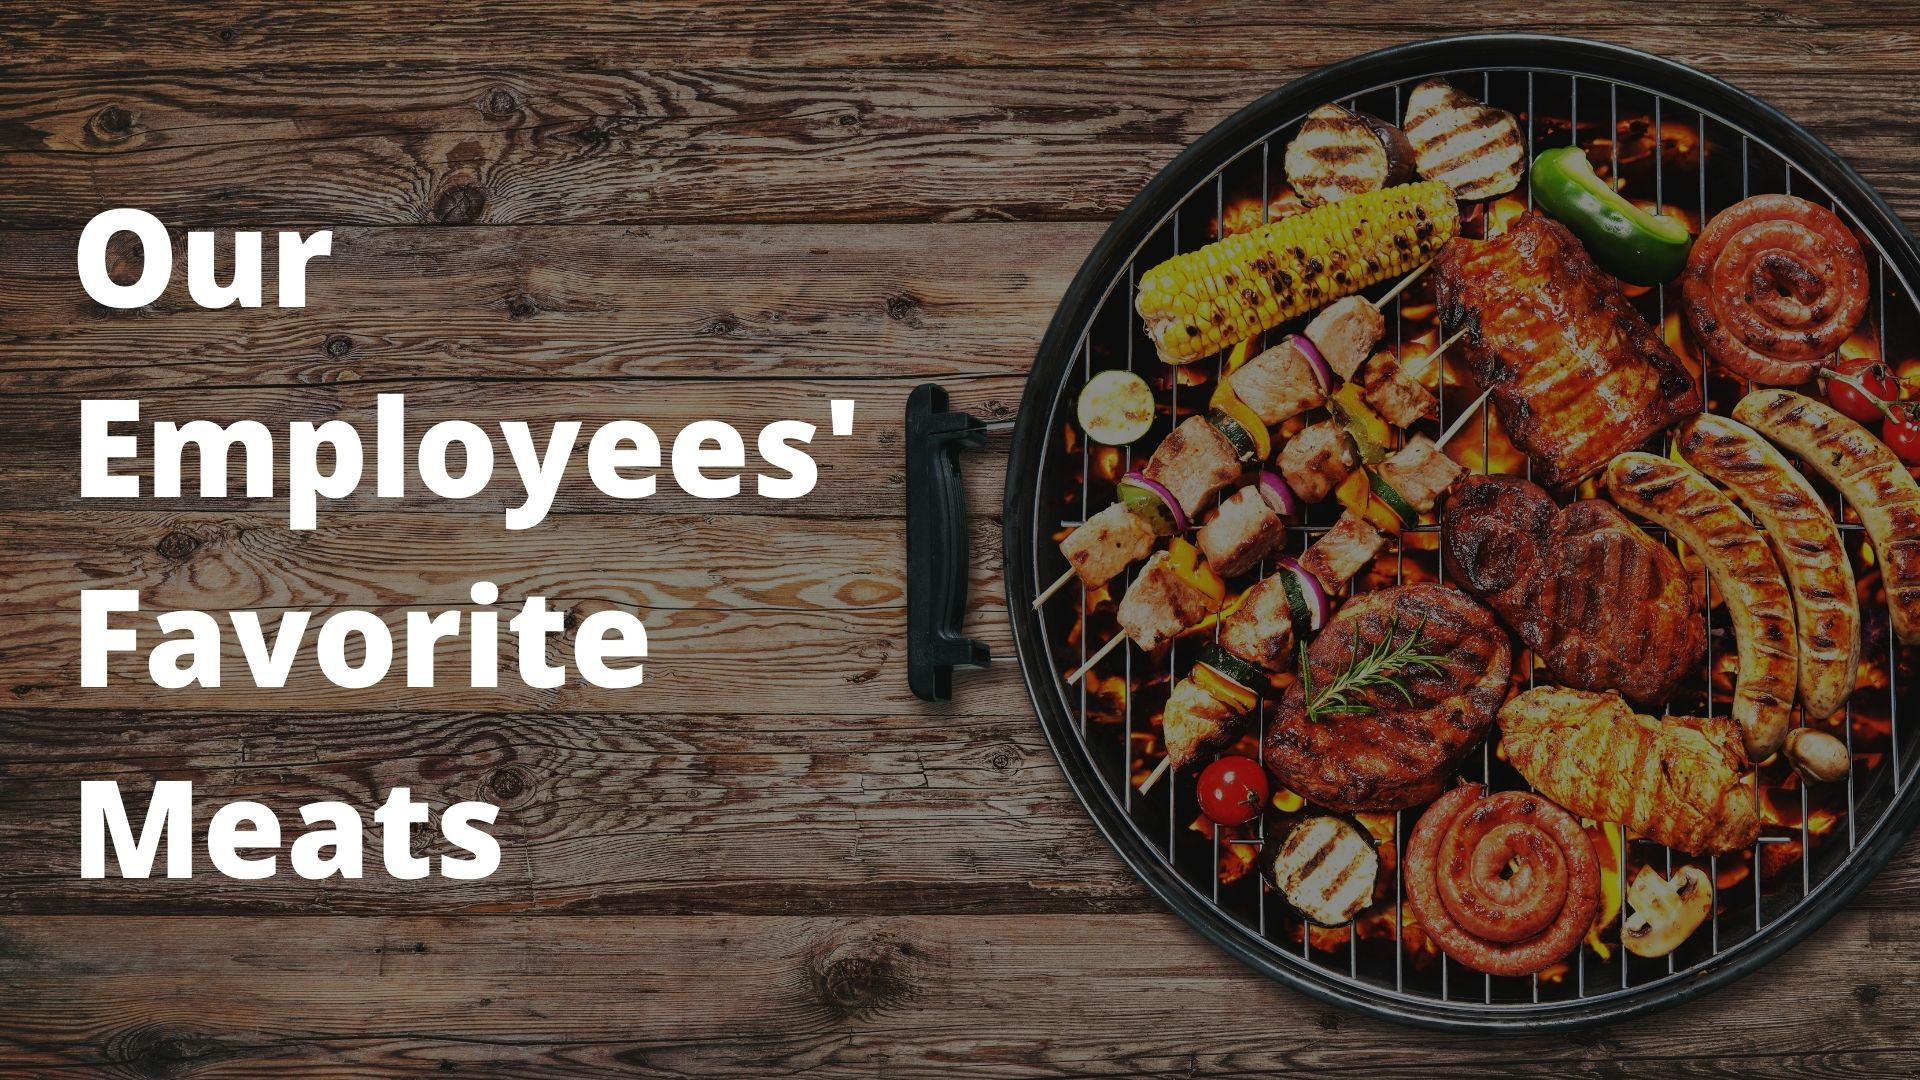 Our Employees' Favorite Meats